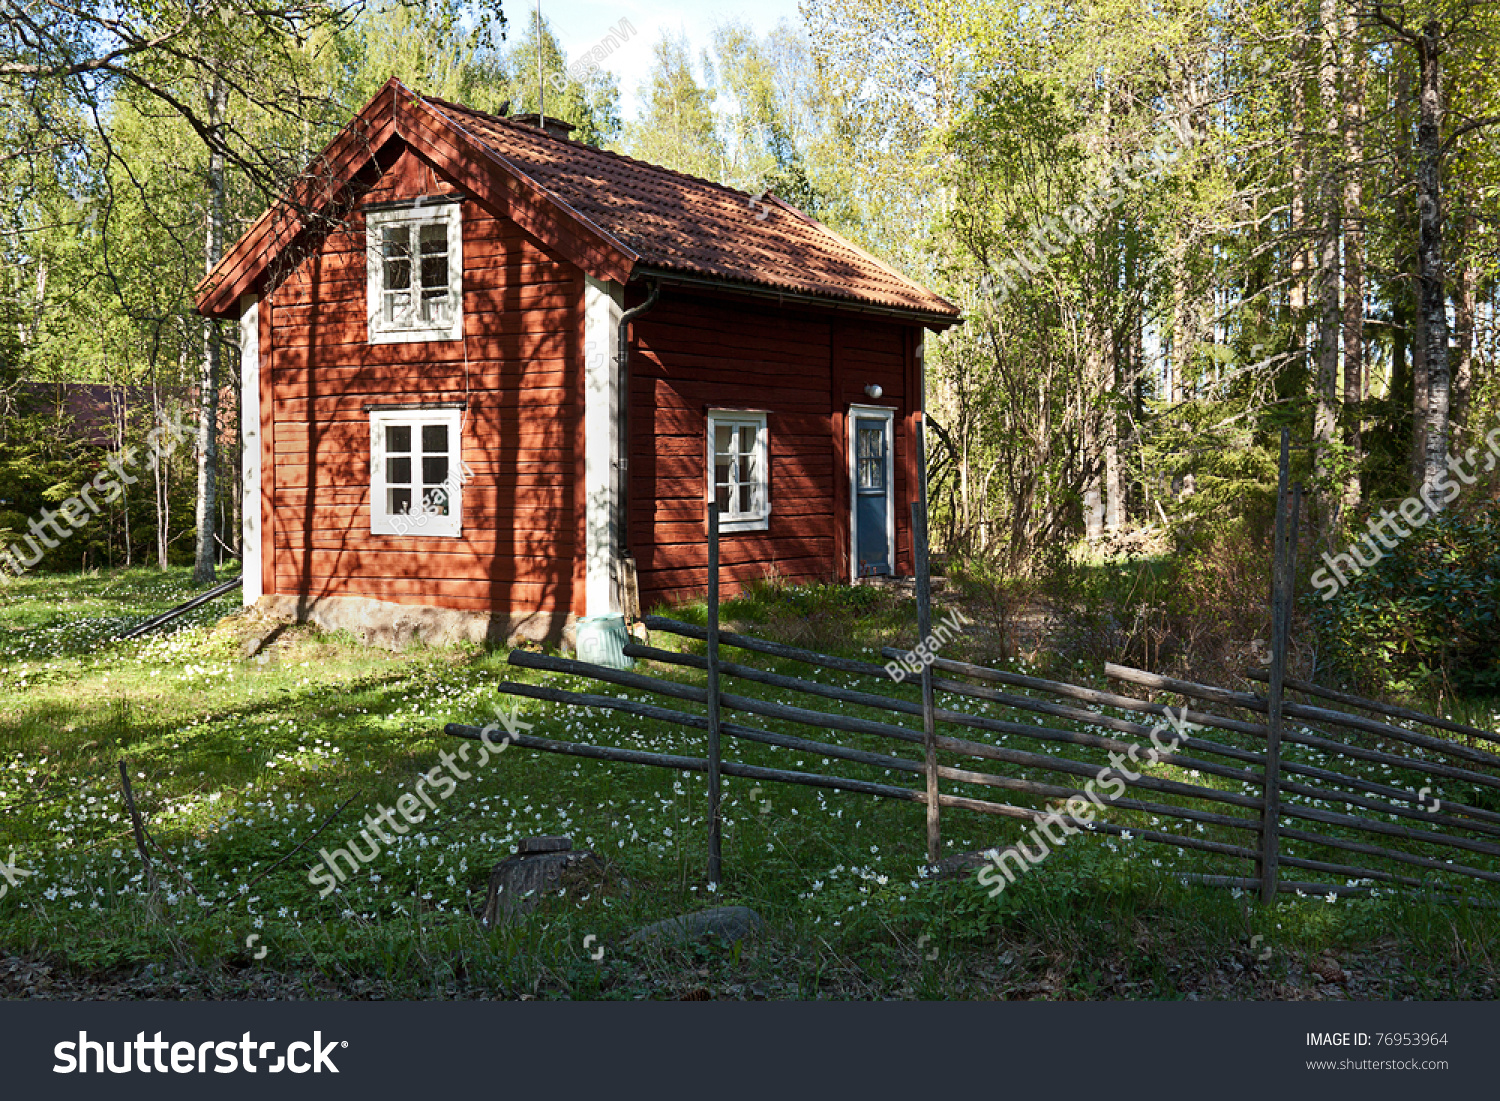 Idyllic swedish house in a forest with old fence typical old wooden painted red